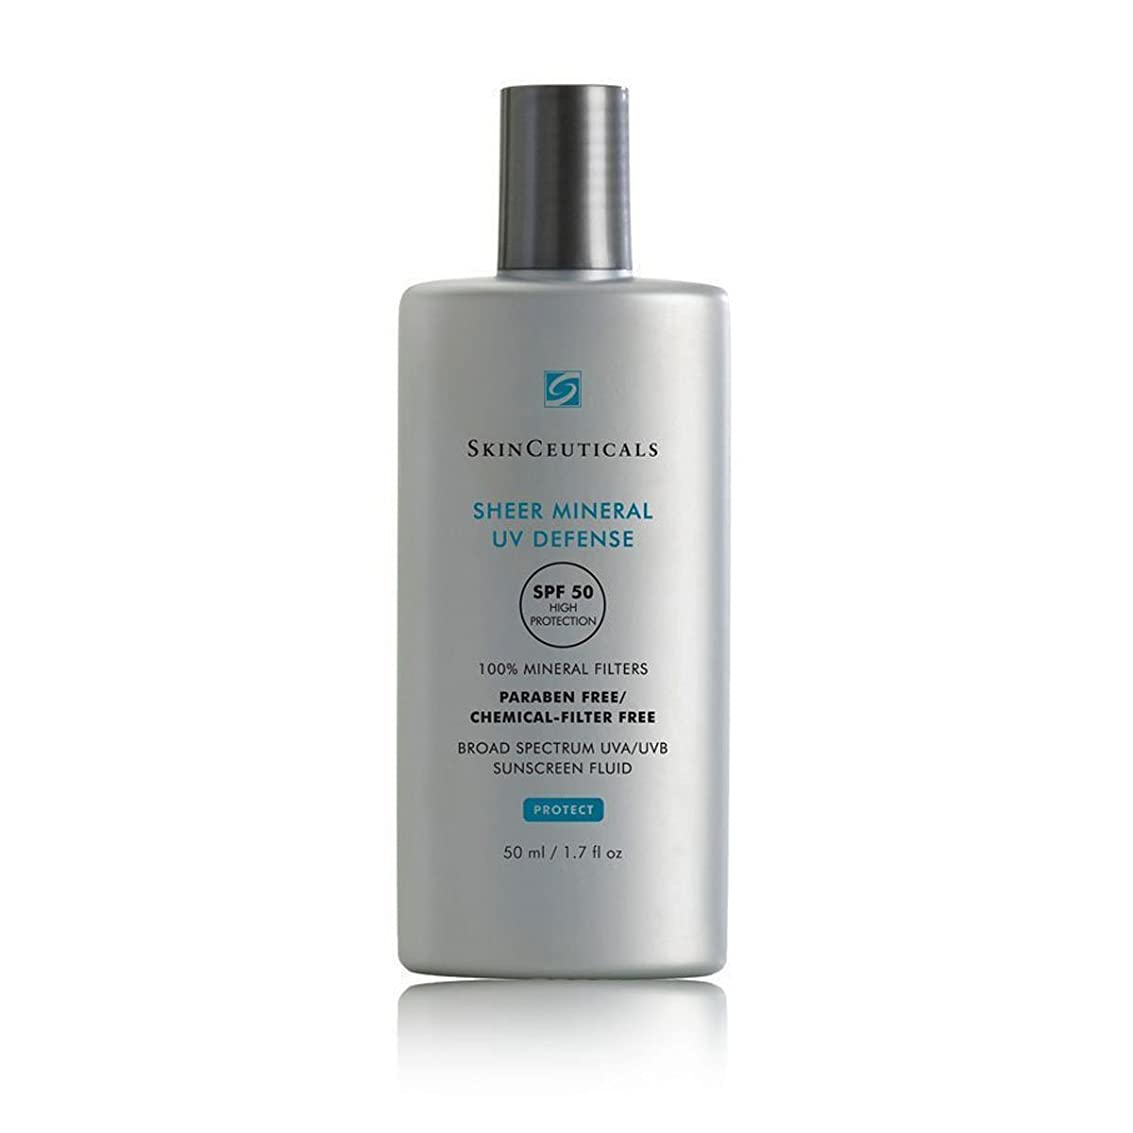 ミニチュアエステート性的Skinceuticals Protect Sheer Mineral Uv Defense Spf50 50ml [並行輸入品]